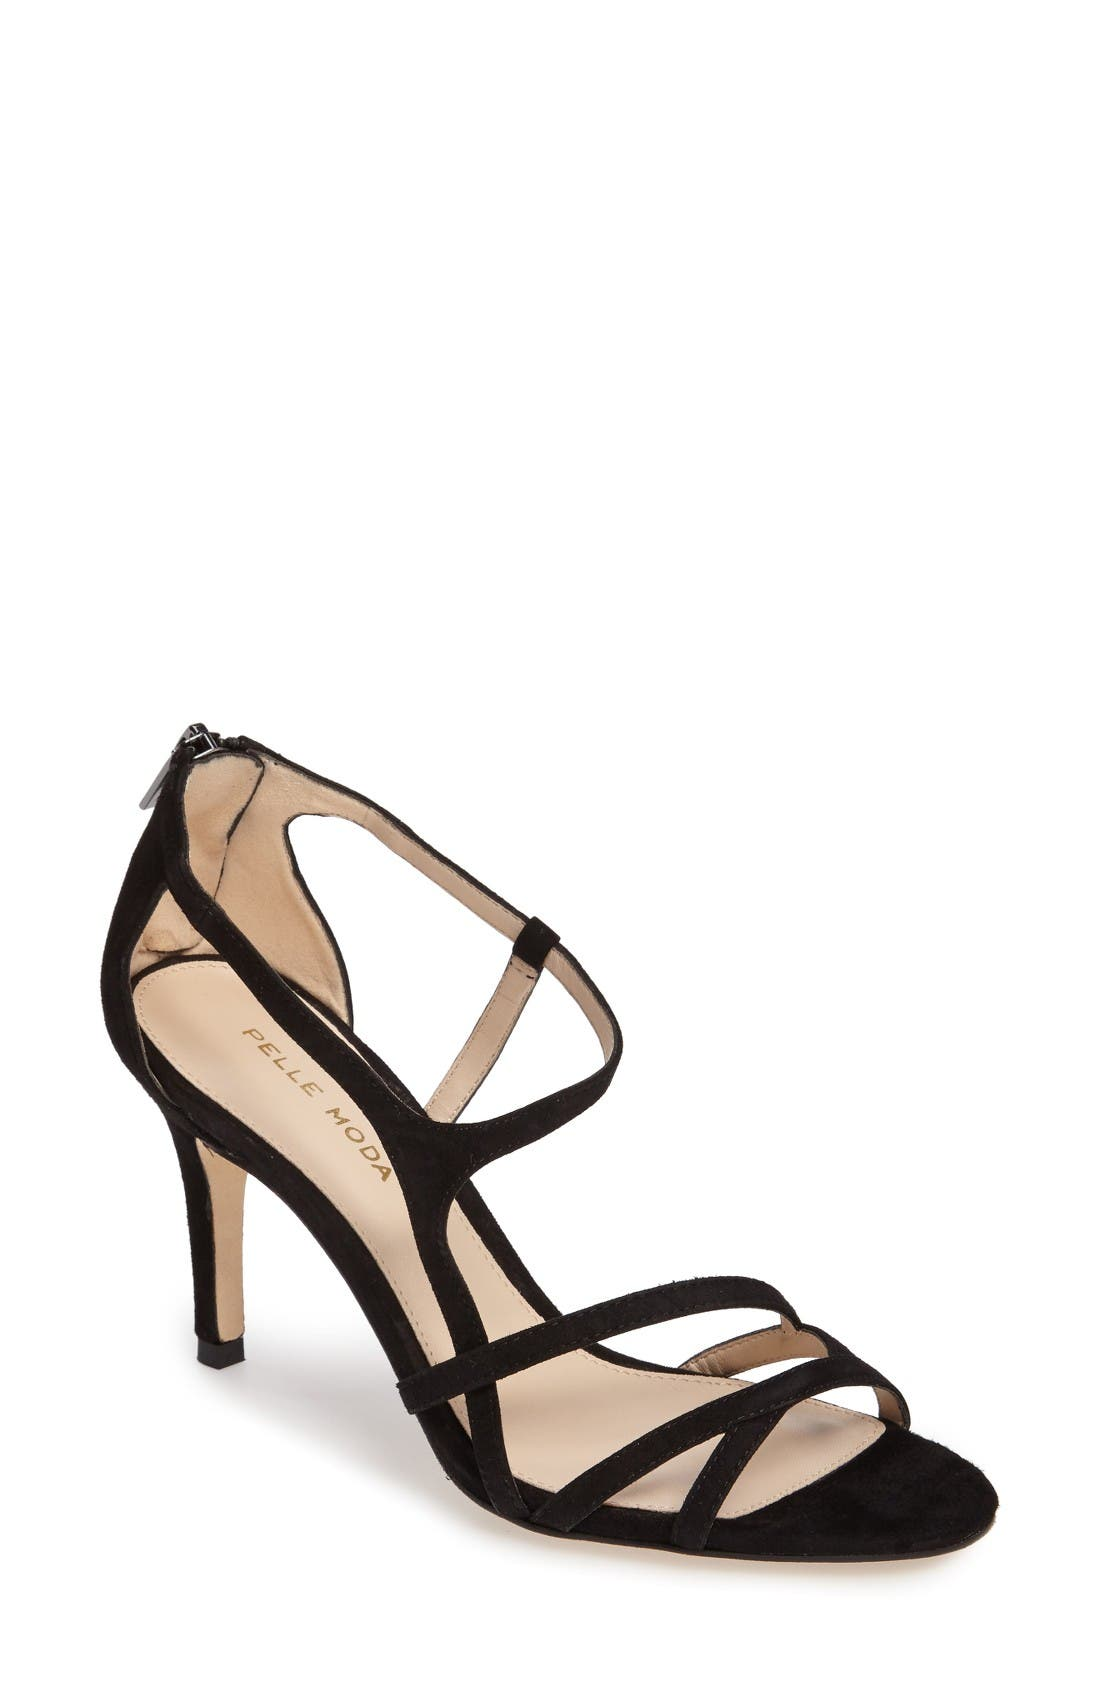 Ruby Asymmetrical Strappy Sandal,                         Main,                         color, Black Leather